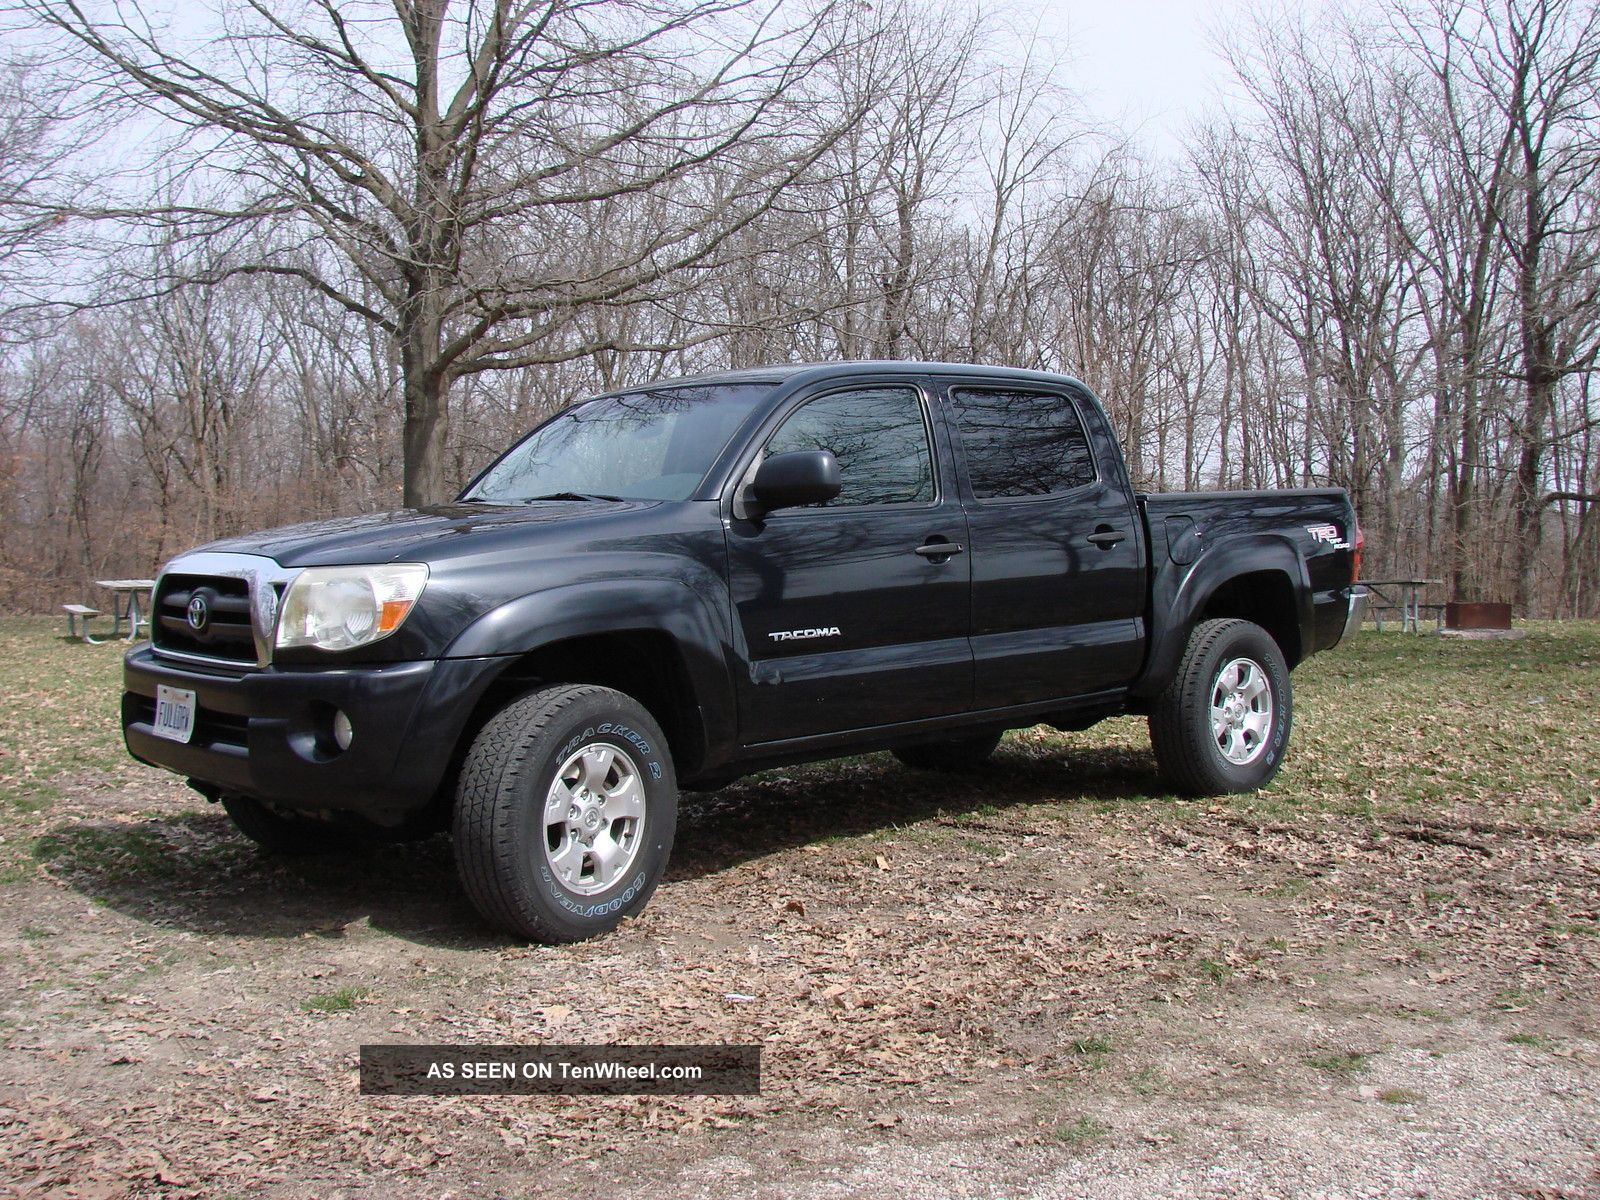 2005 Toyota Tacoma Crew Cab 4 Door 4x4 Tacoma photo